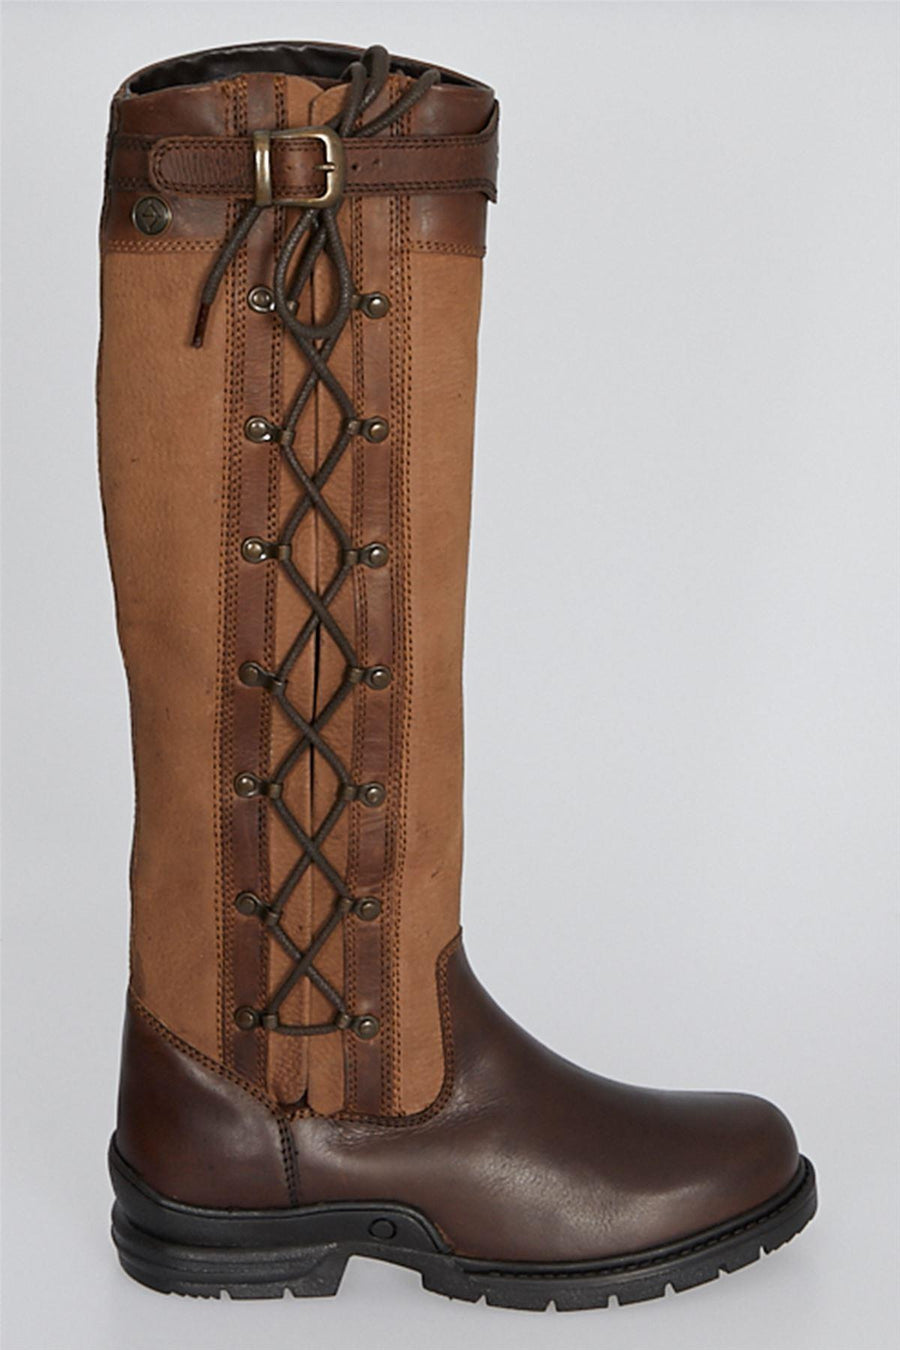 Bow & Arrow Kingston Country Boots BROWN